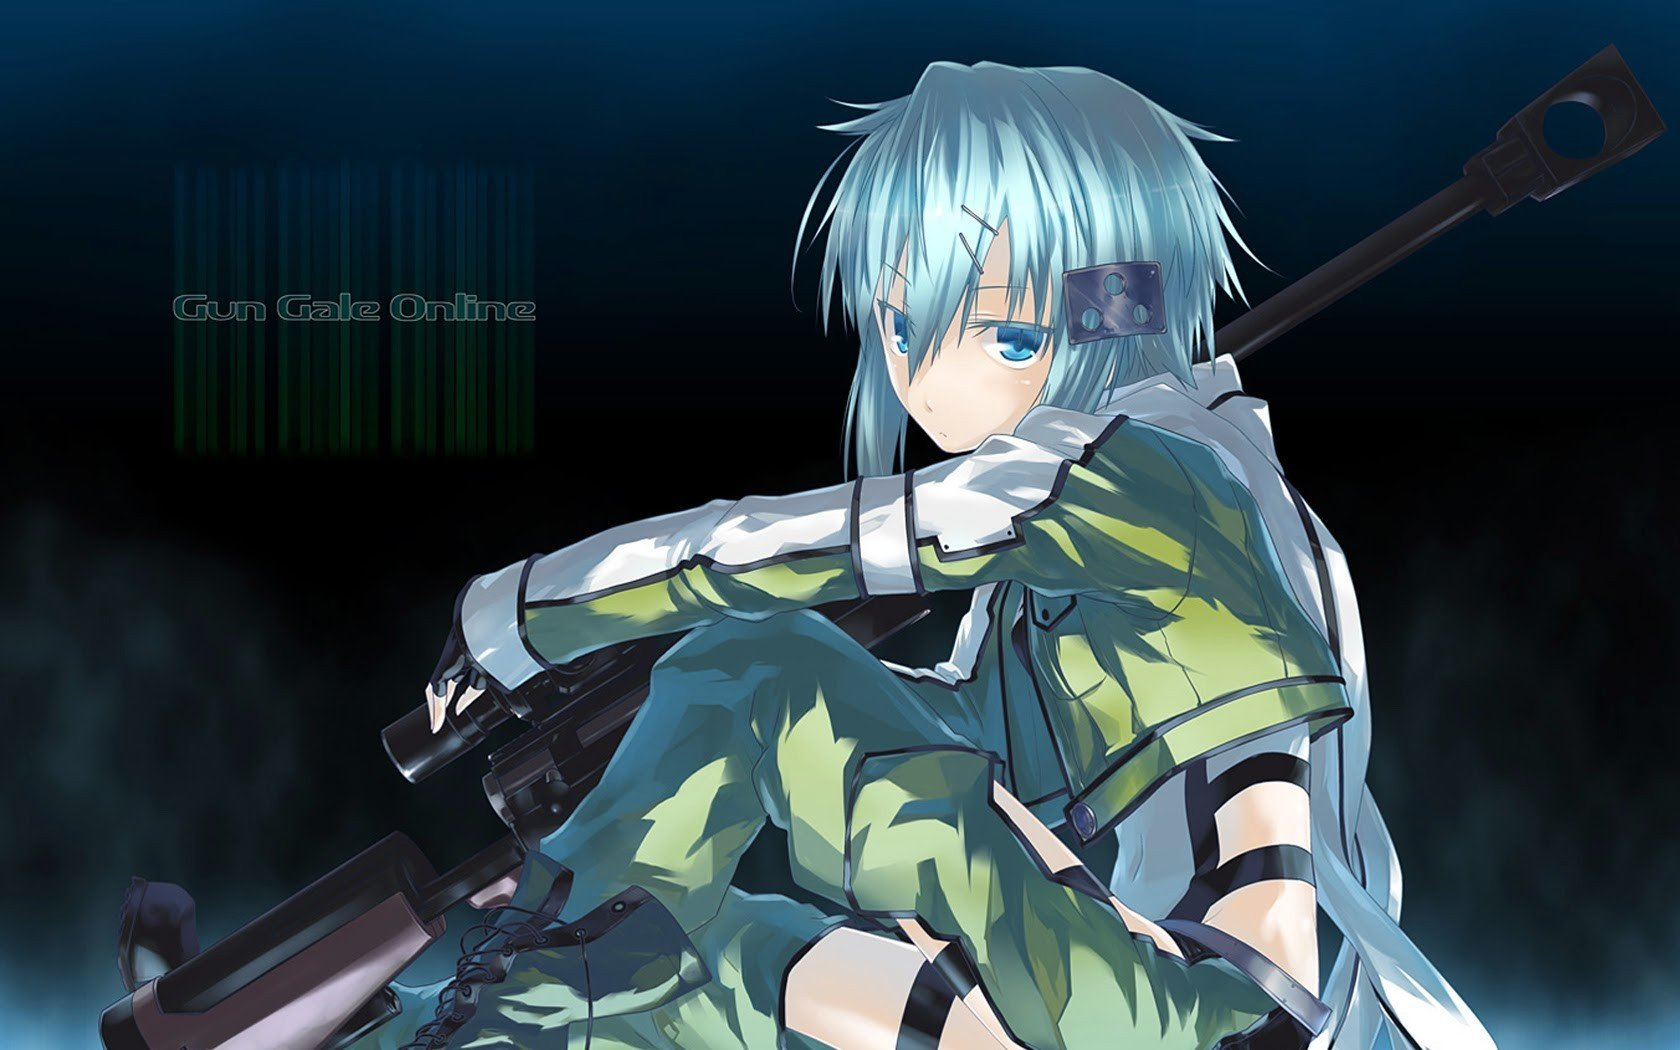 Download hd 1680x1050 Sword Art Online 2 (II) desktop background ID:112387 for free